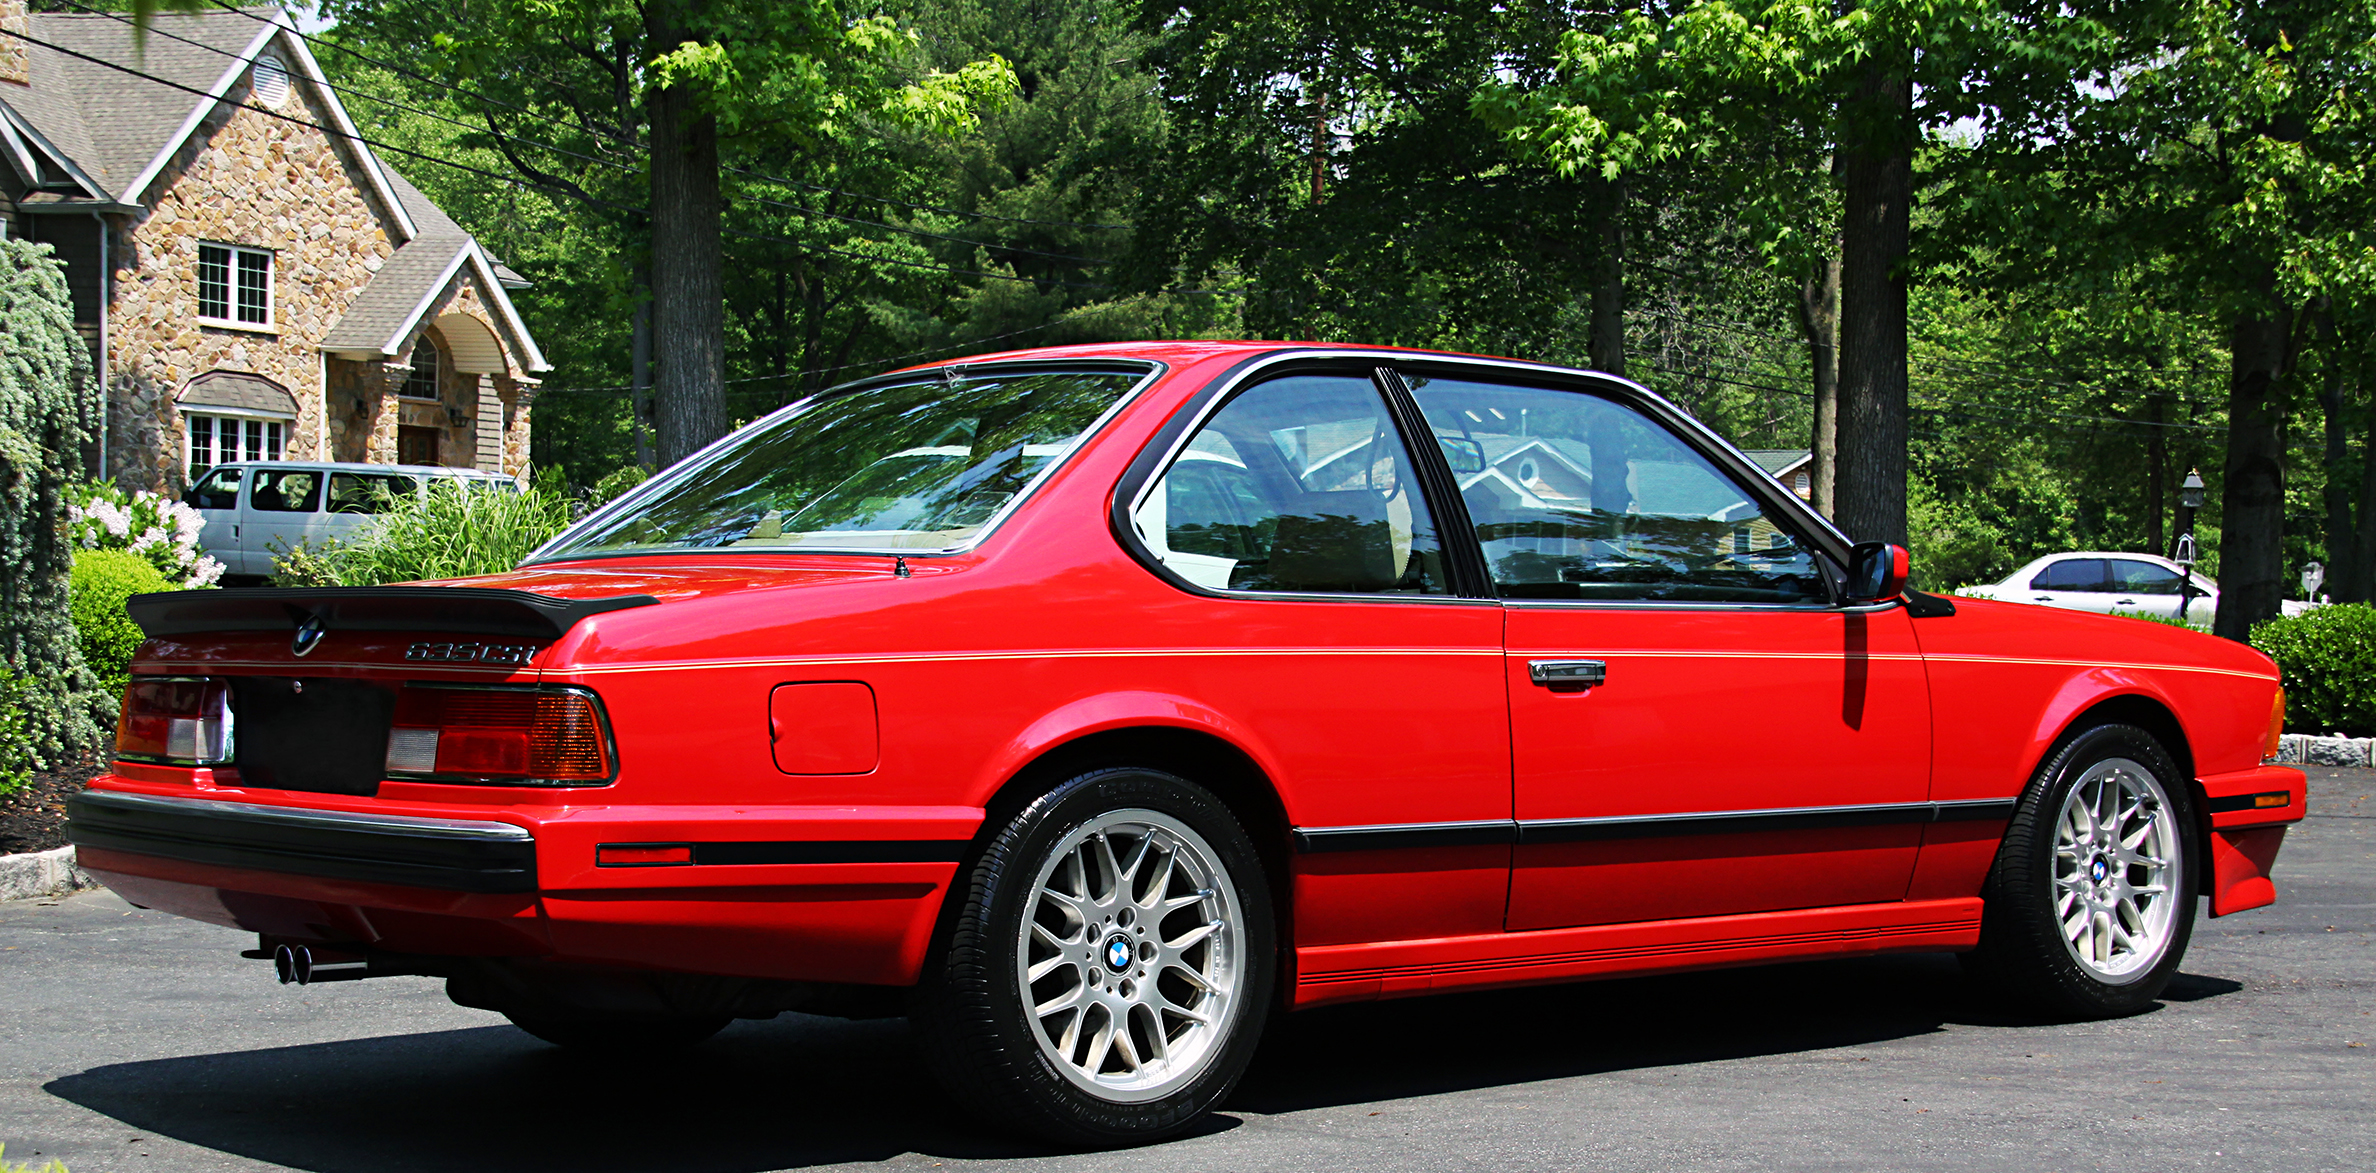 file bmw 635csi side wikimedia commons. Black Bedroom Furniture Sets. Home Design Ideas